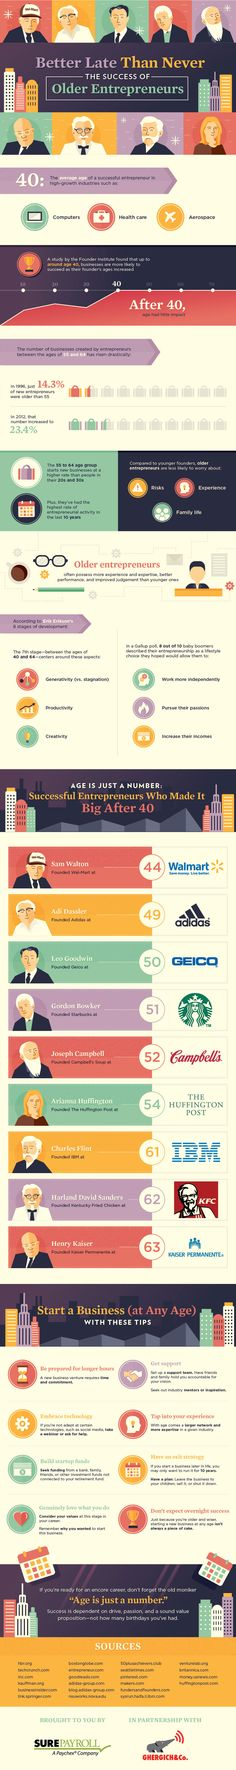 the success of older entreprenuers